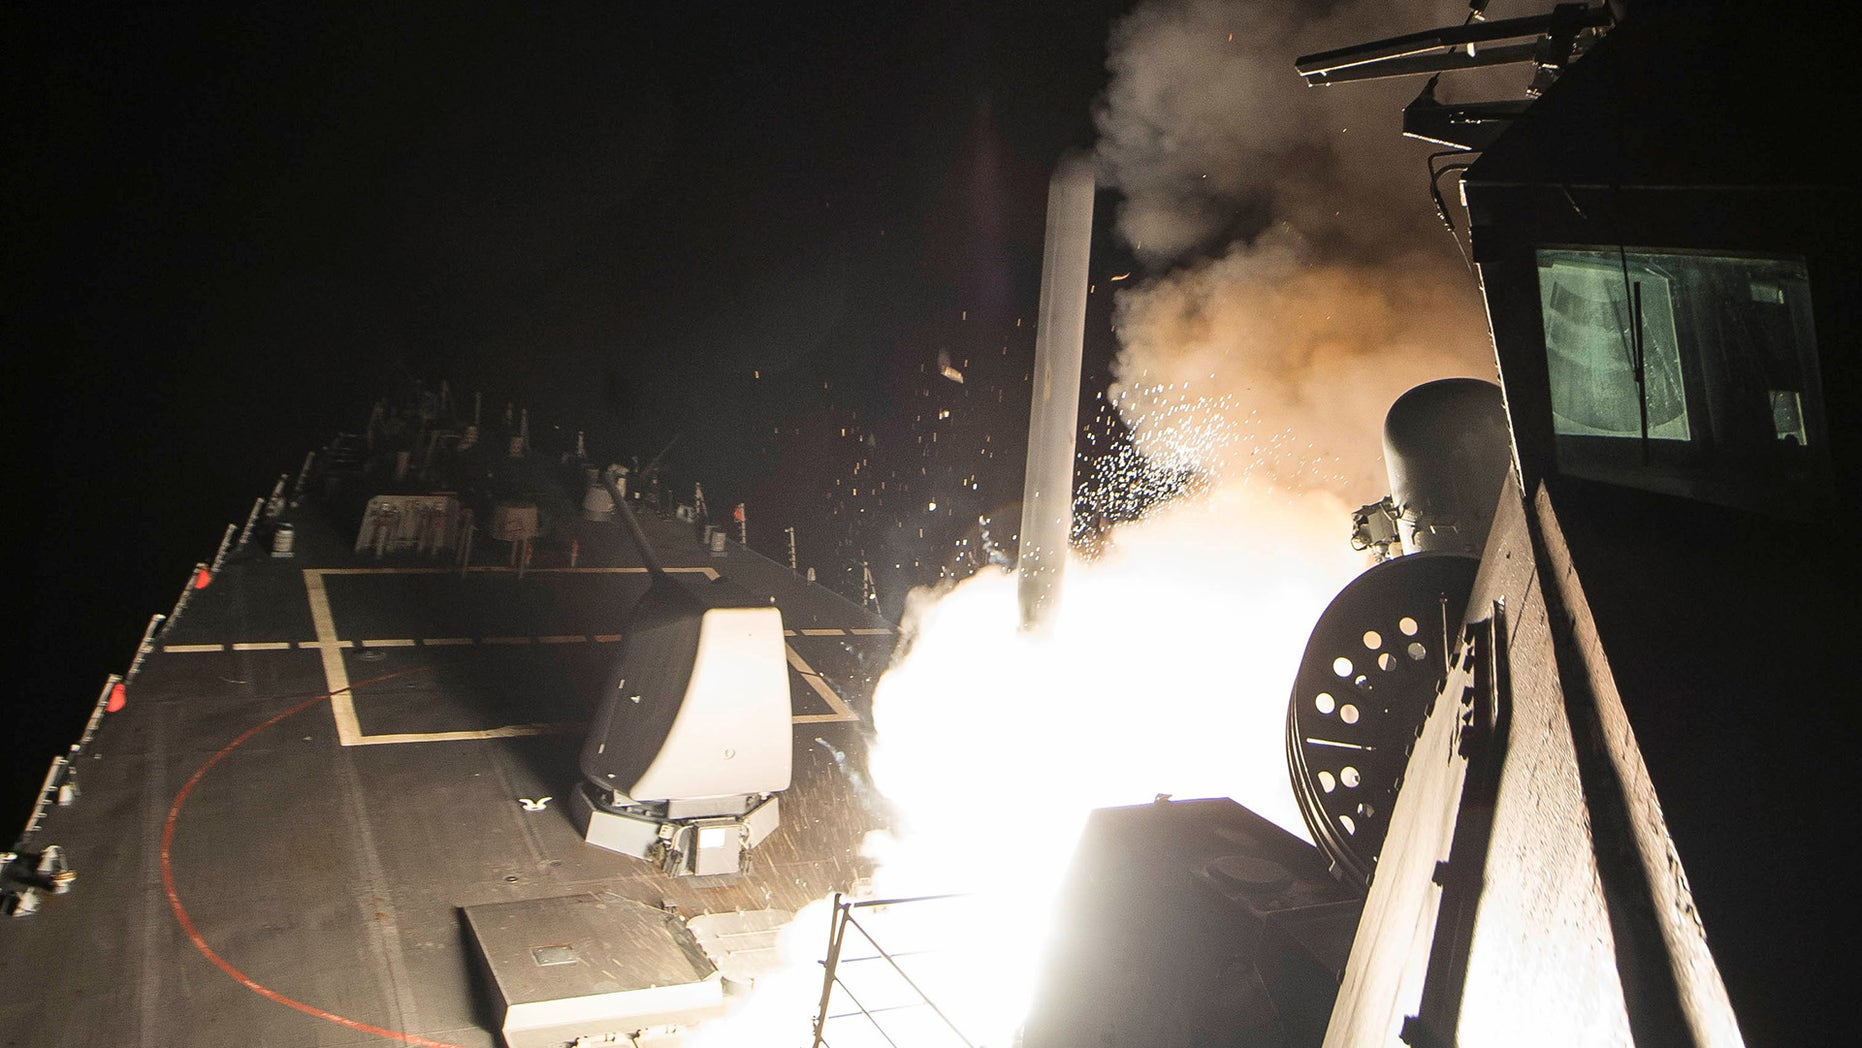 April 7, 2017: U.S. Navy guided-missile destroyer USS Ross (DDG 71) fires a tomahawk land attack missile in Mediterranean Sea.